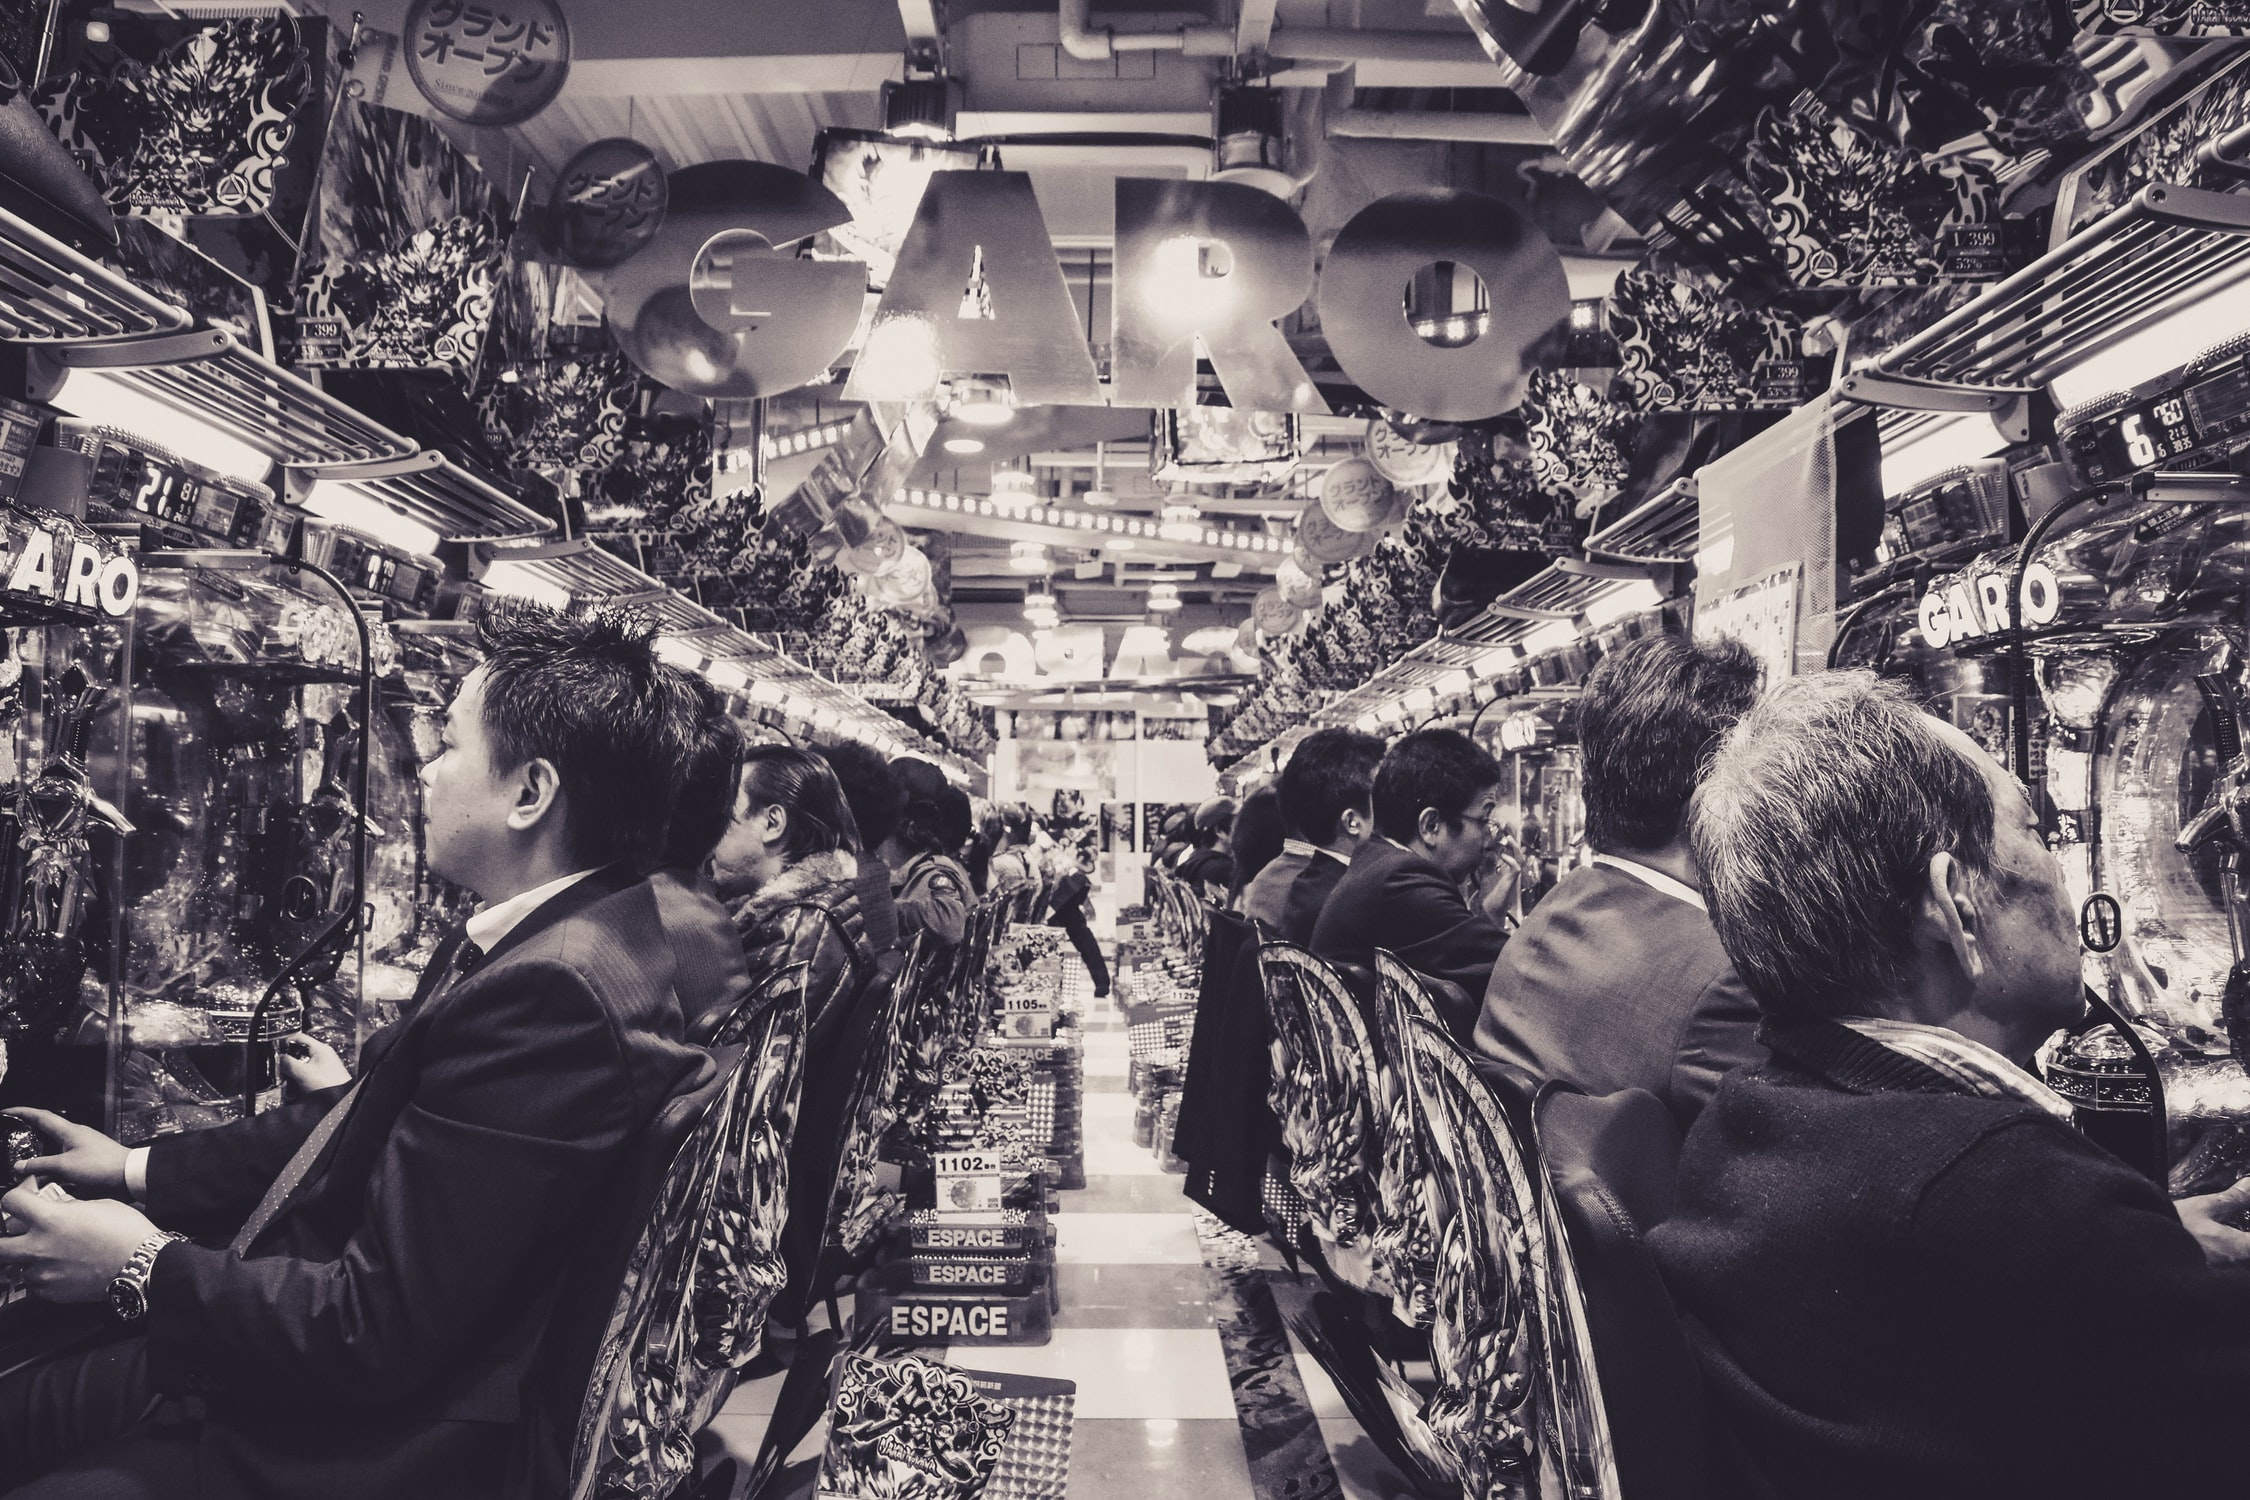 Is Pachinko a gamble or just a game in Japan?